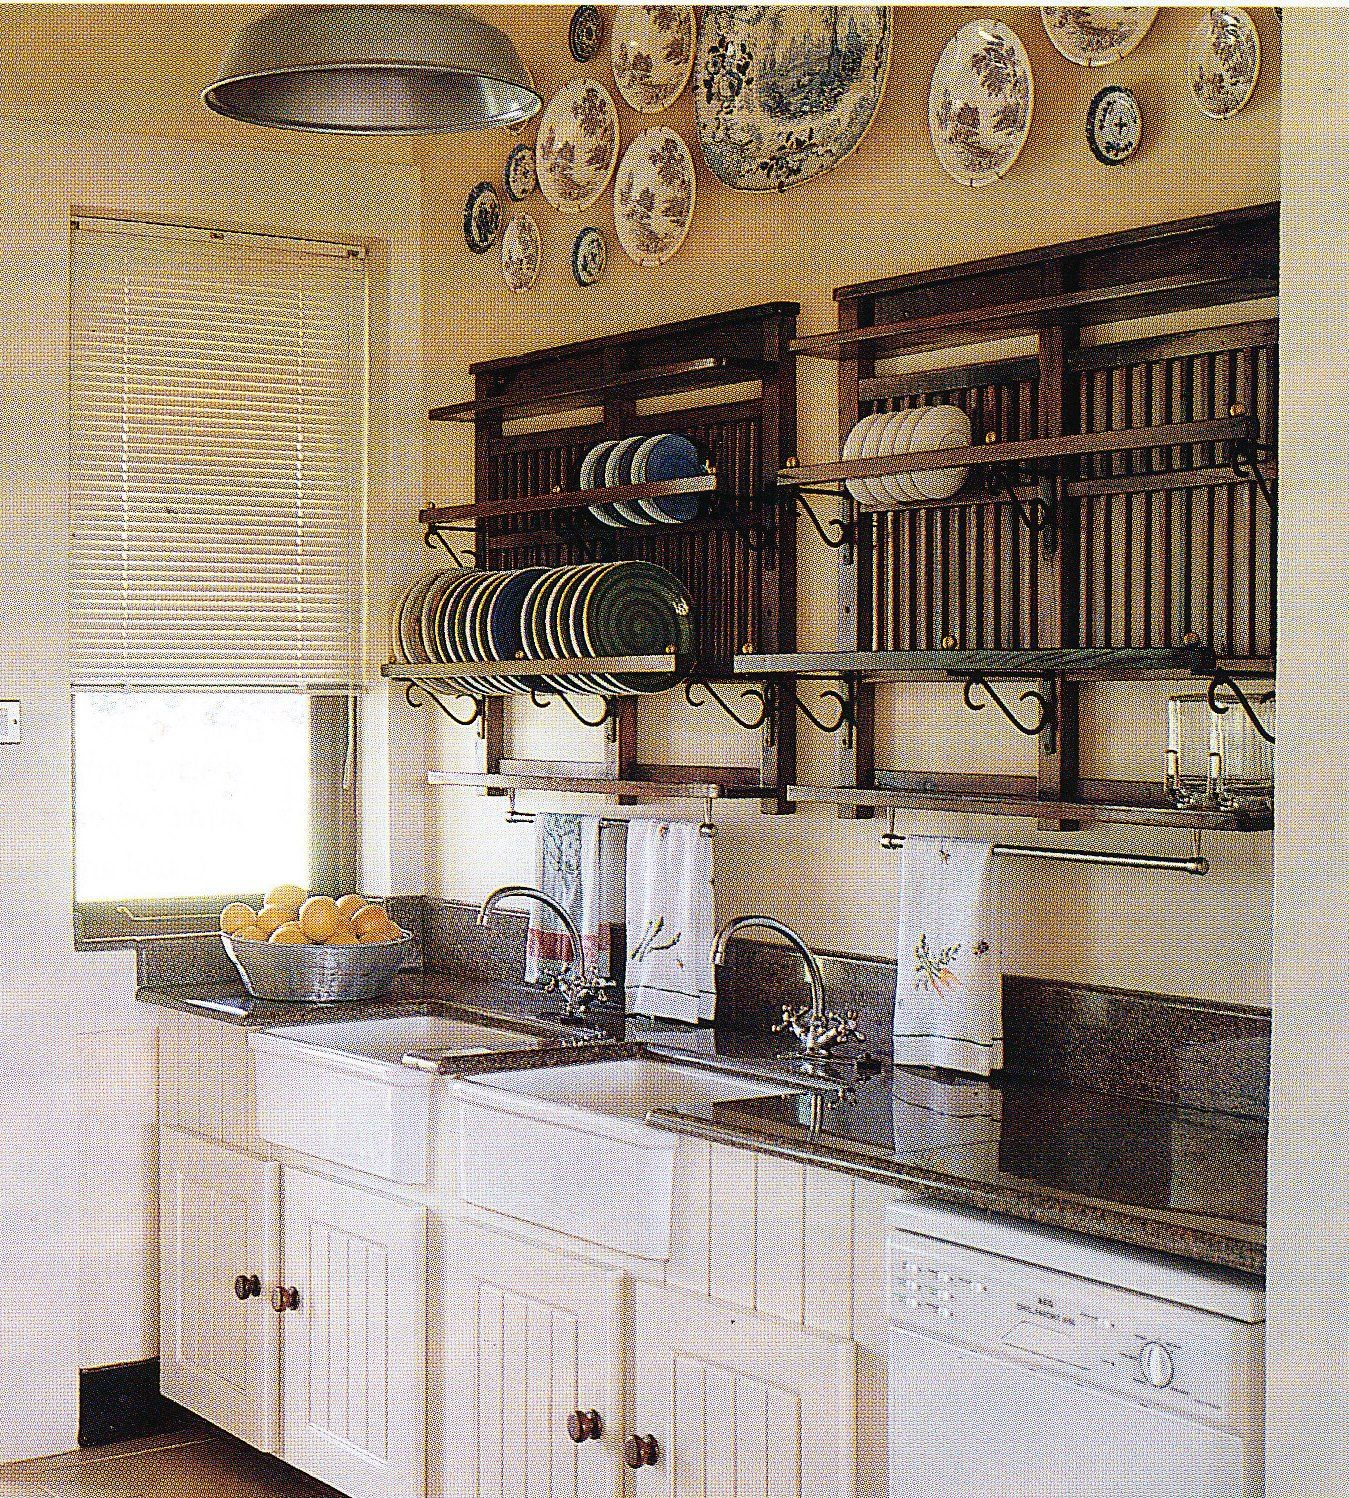 Kitchen Cabinets Zimbabwe: I Have An Obsession With Plate Racks. They Look Good, And